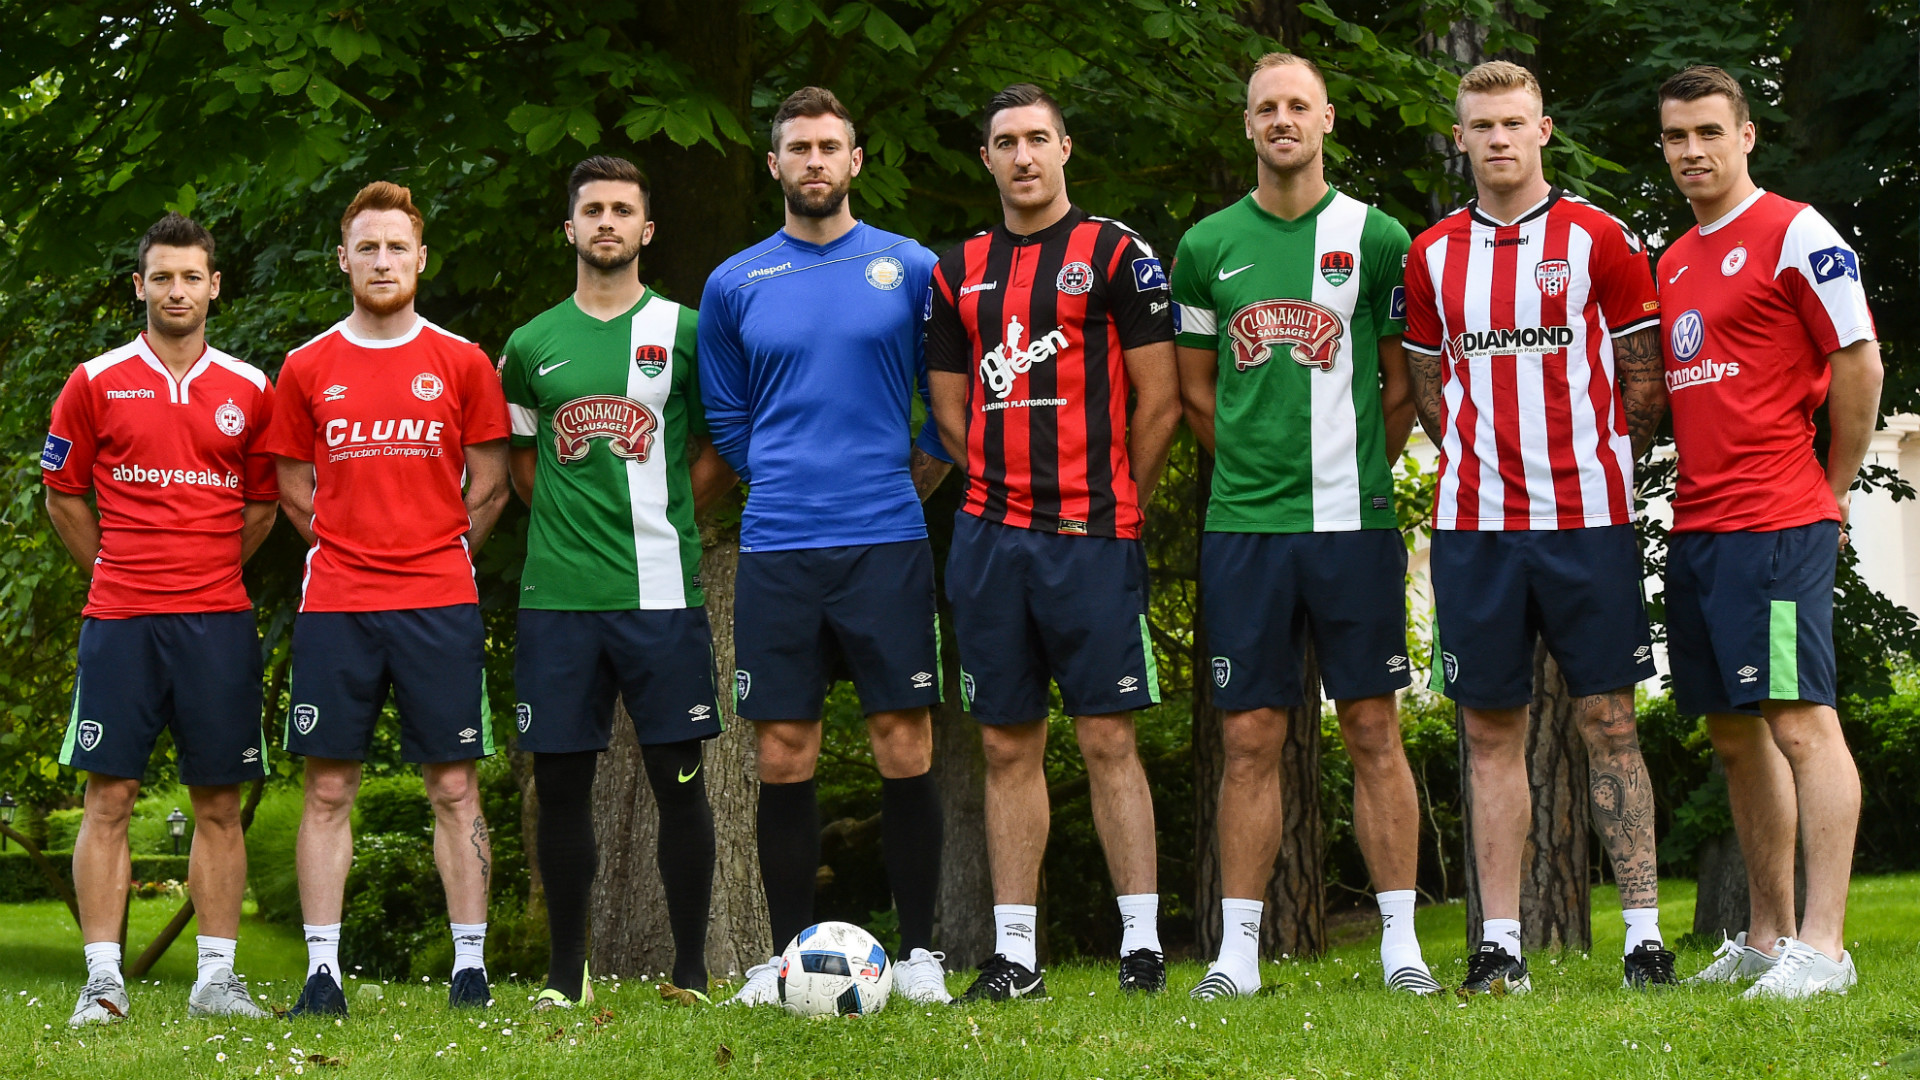 League of Ireland jersey photo must be more than one-off | Goal.com